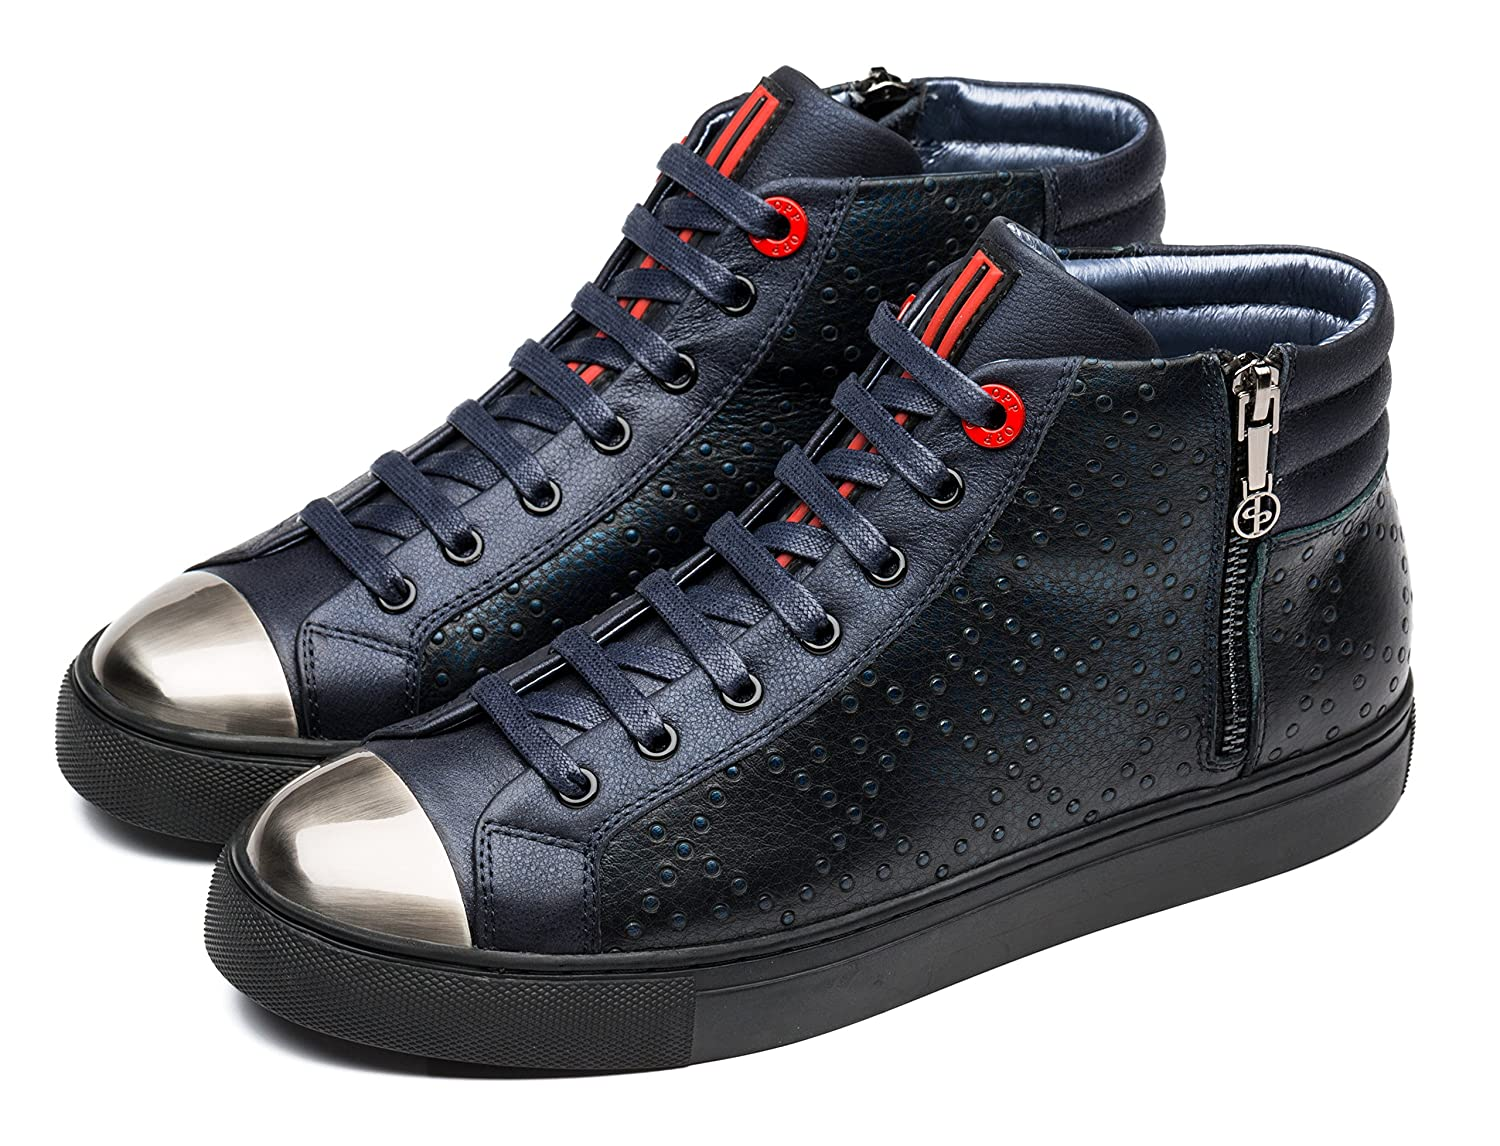 3a3c5884a3 Amazon.com | OPP Men's Fashion Leather Sneaker Casual High Top Shoes ...